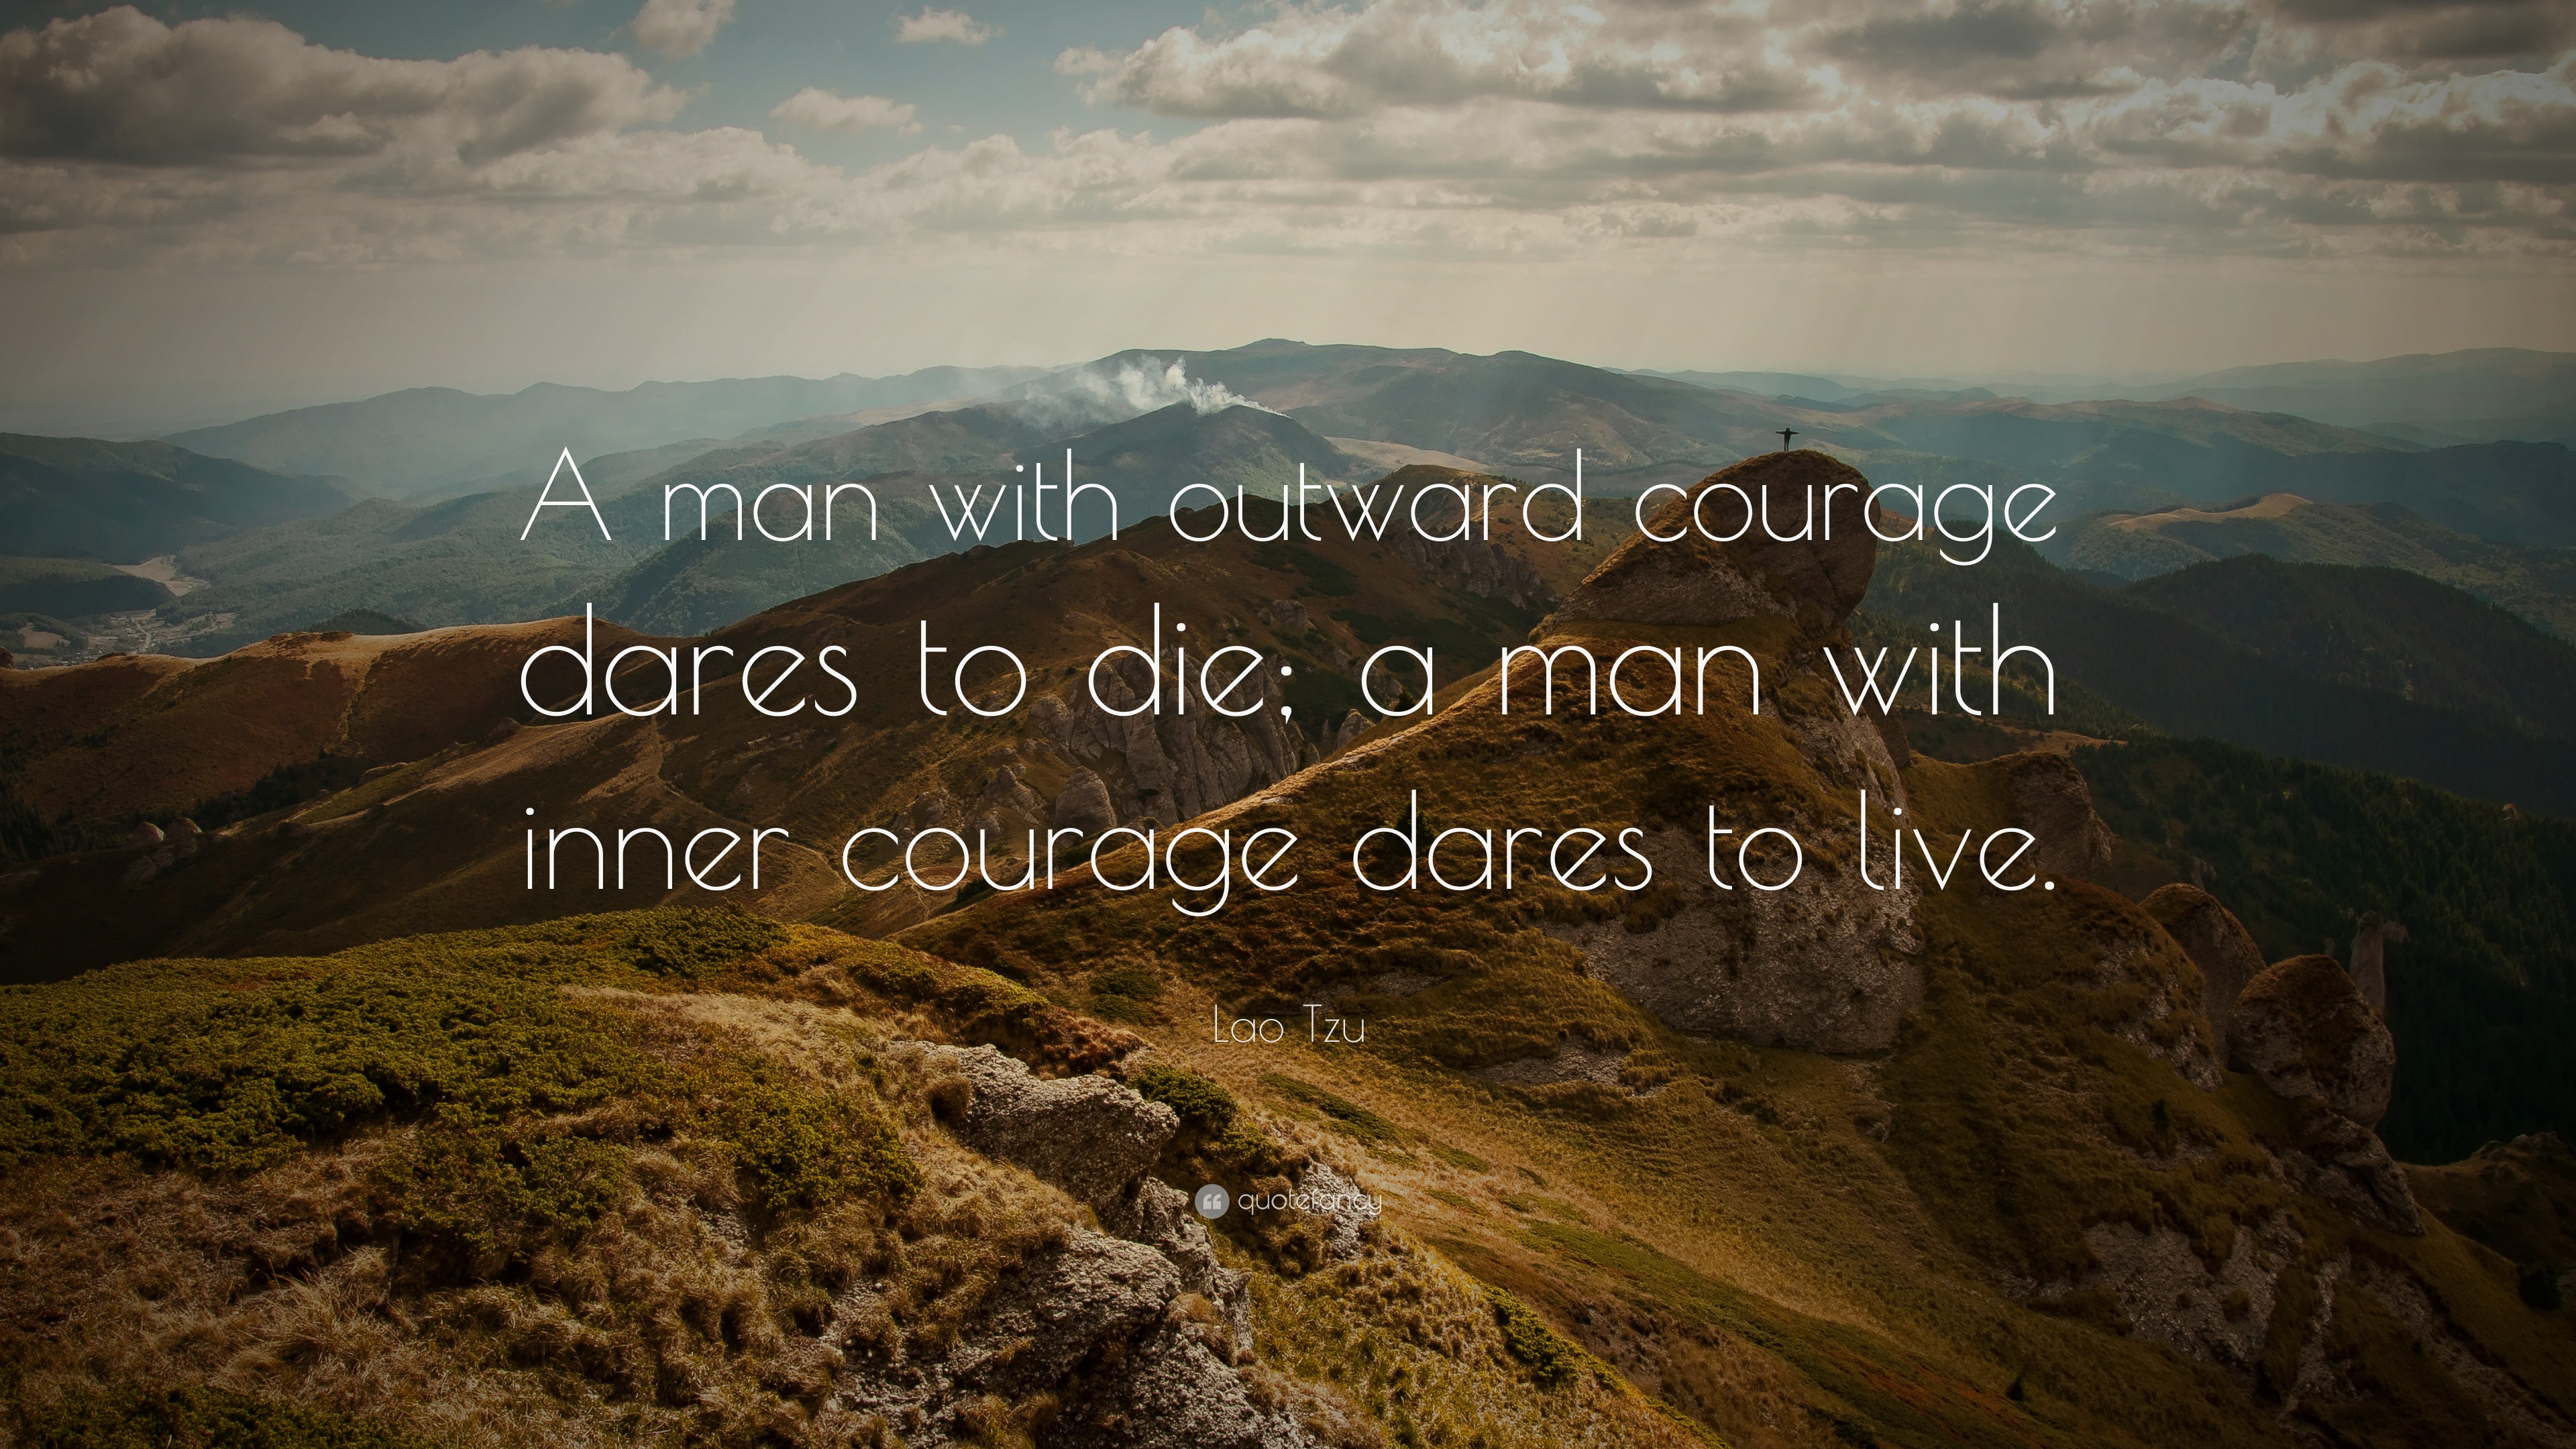 lao tzu quote a man outward courage dares to die a man lao tzu quote a man outward courage dares to die a man